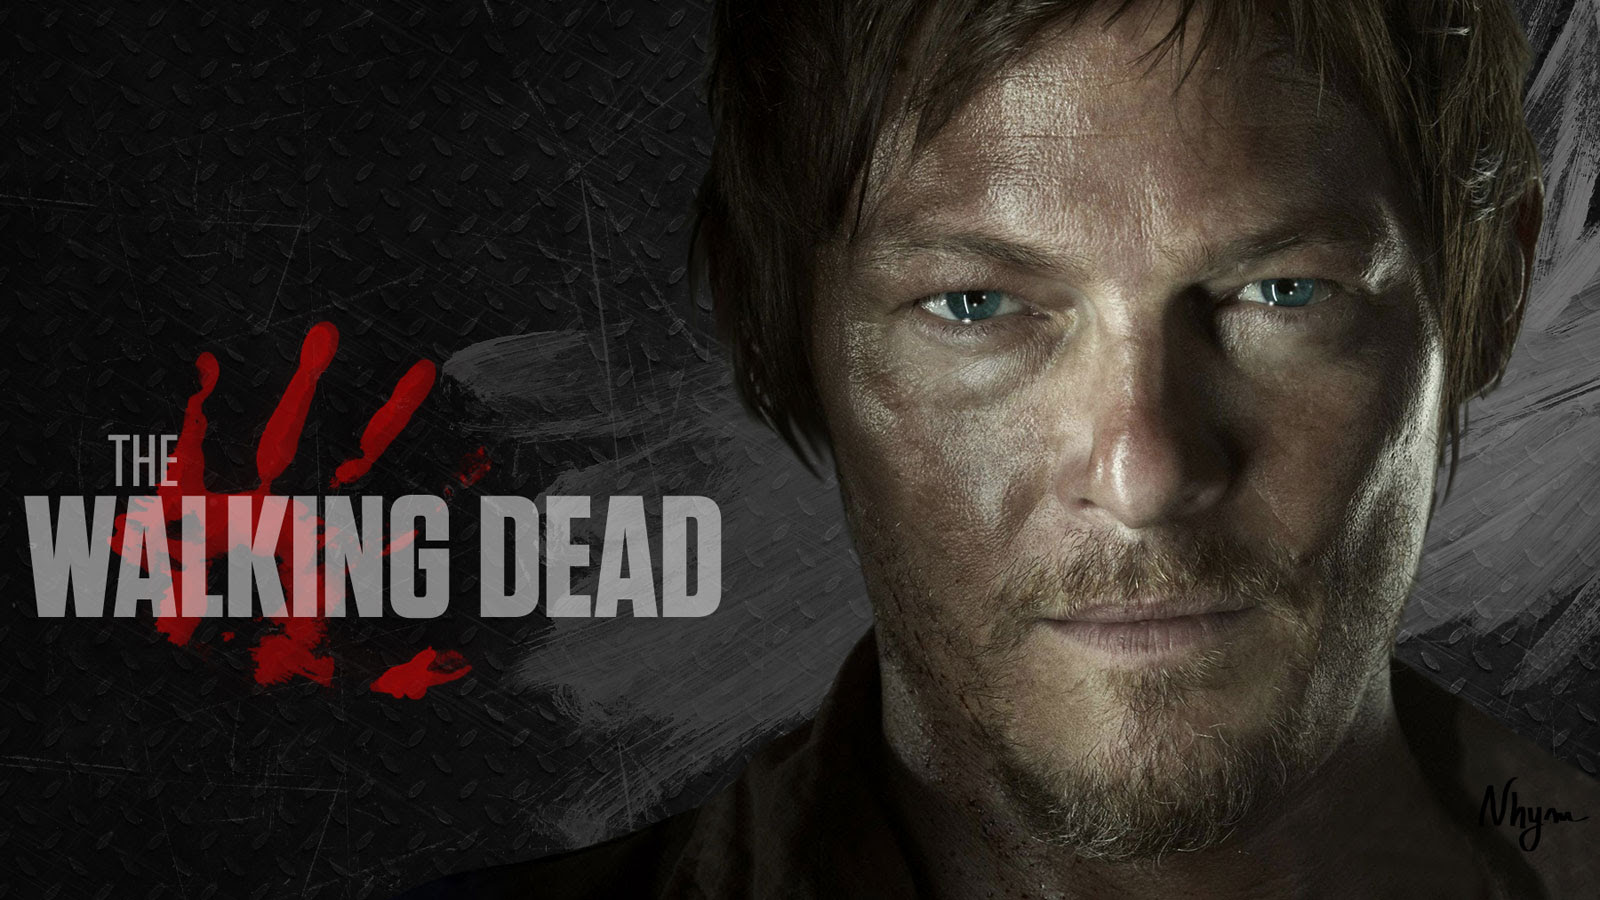 http://www.metroweekly.com/wp-content/uploads/2014/08/Background-the-walking-dead-with-Daryl-Dixon.jpg